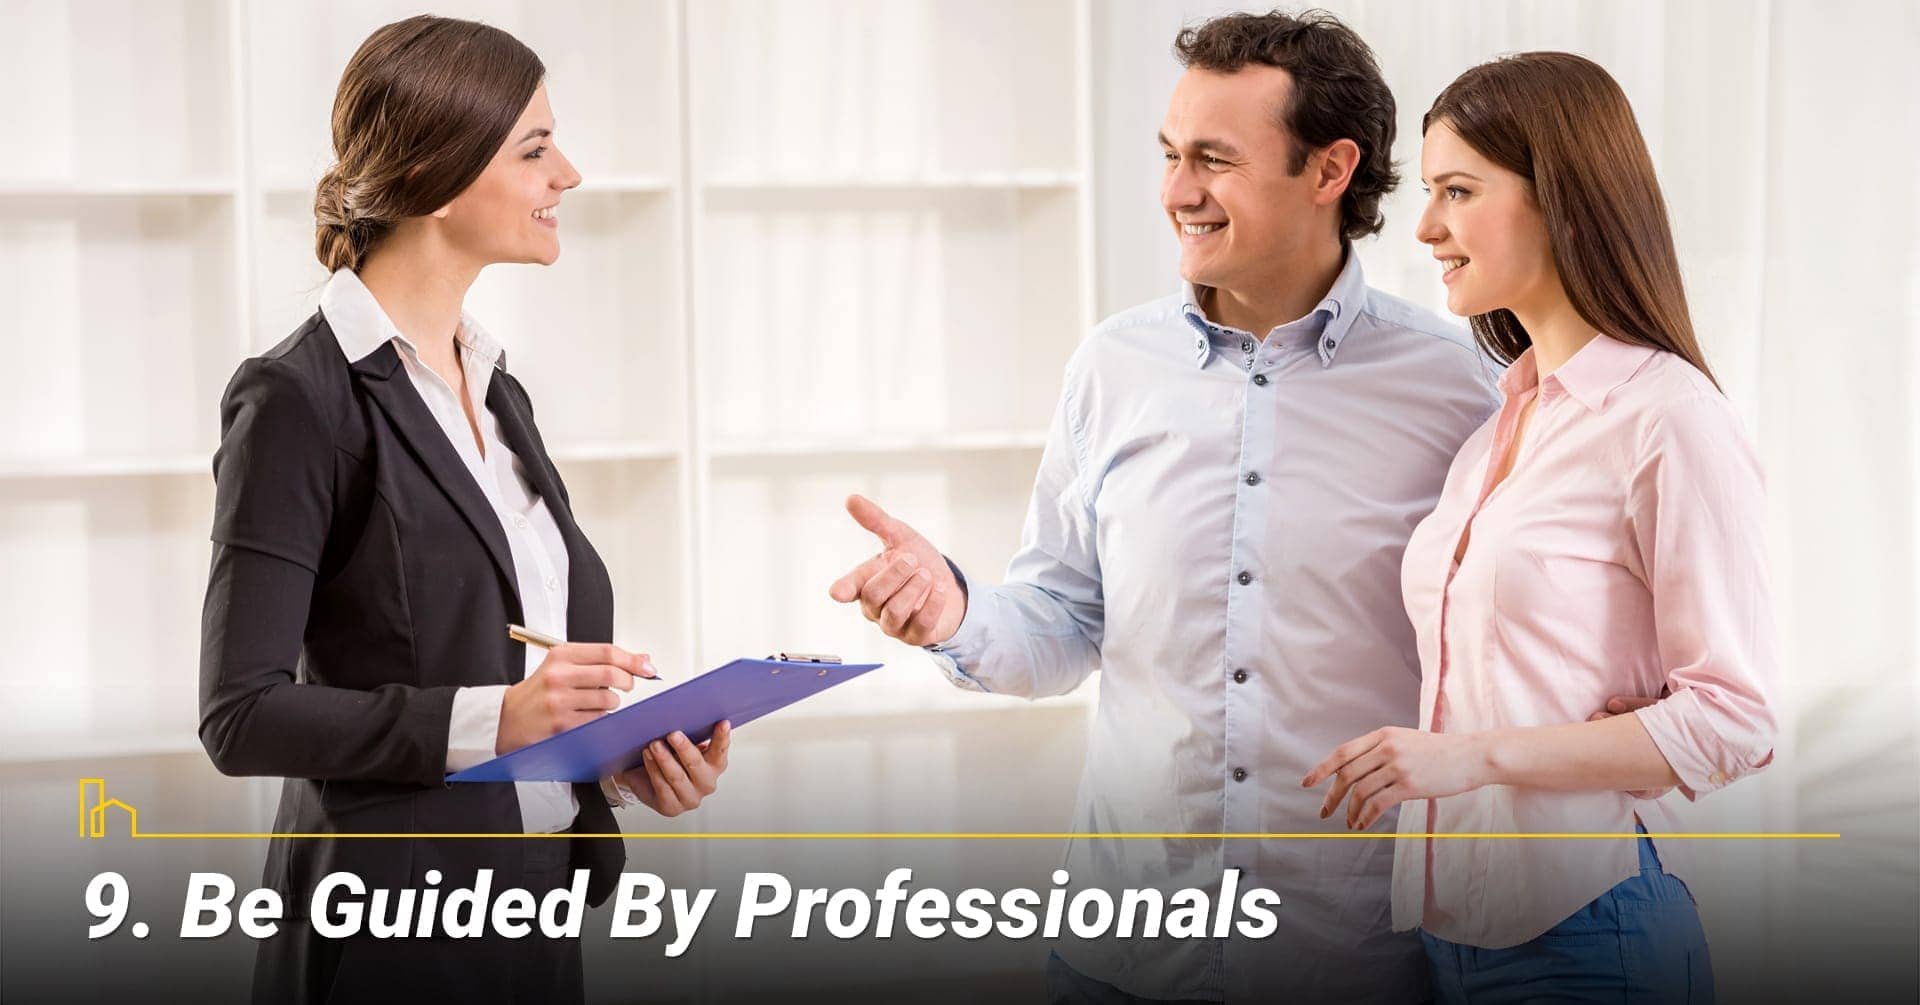 Be Guided by Professionals, get advice from professionals